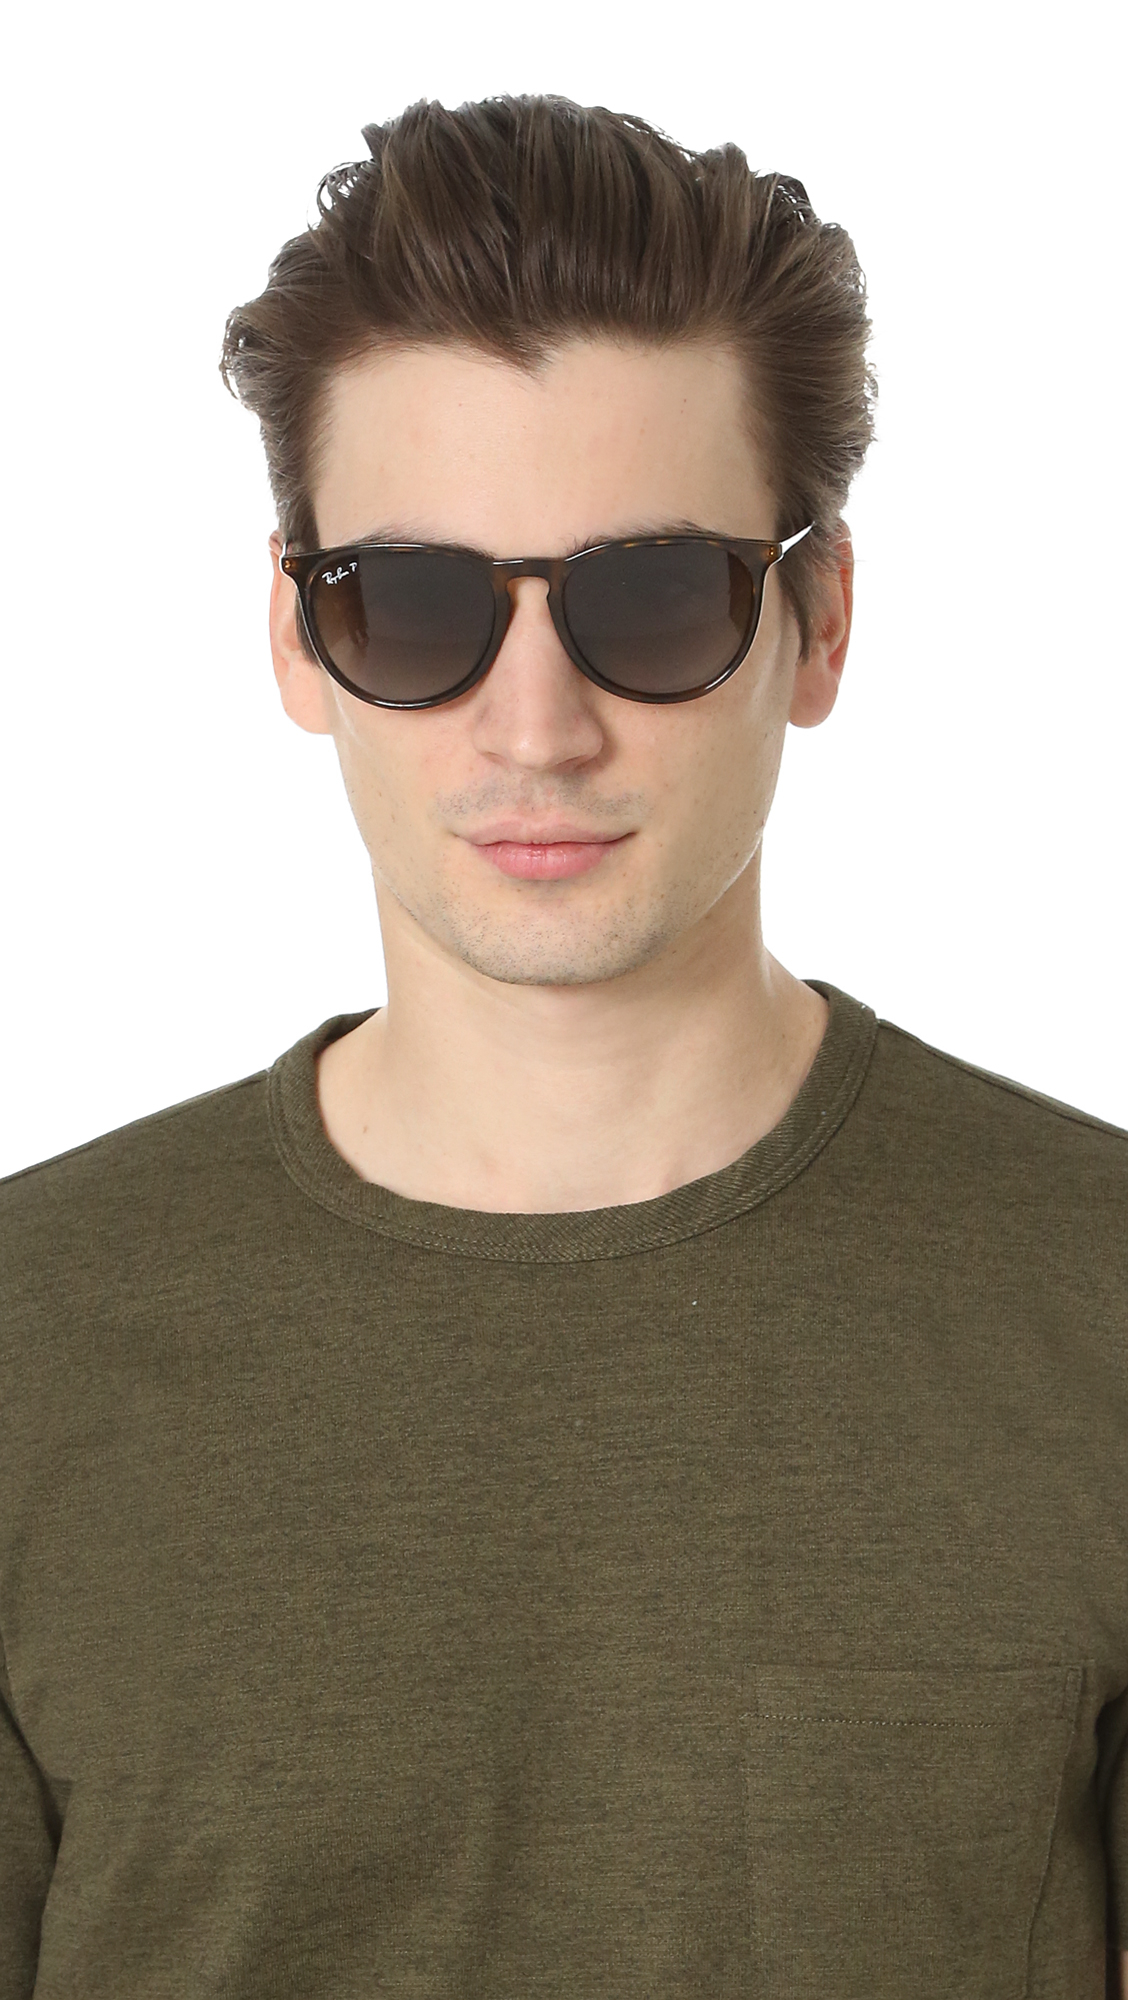 26049b6f8b0 Ray-Ban Full Fit Round Sunglasses in Brown for Men - Lyst